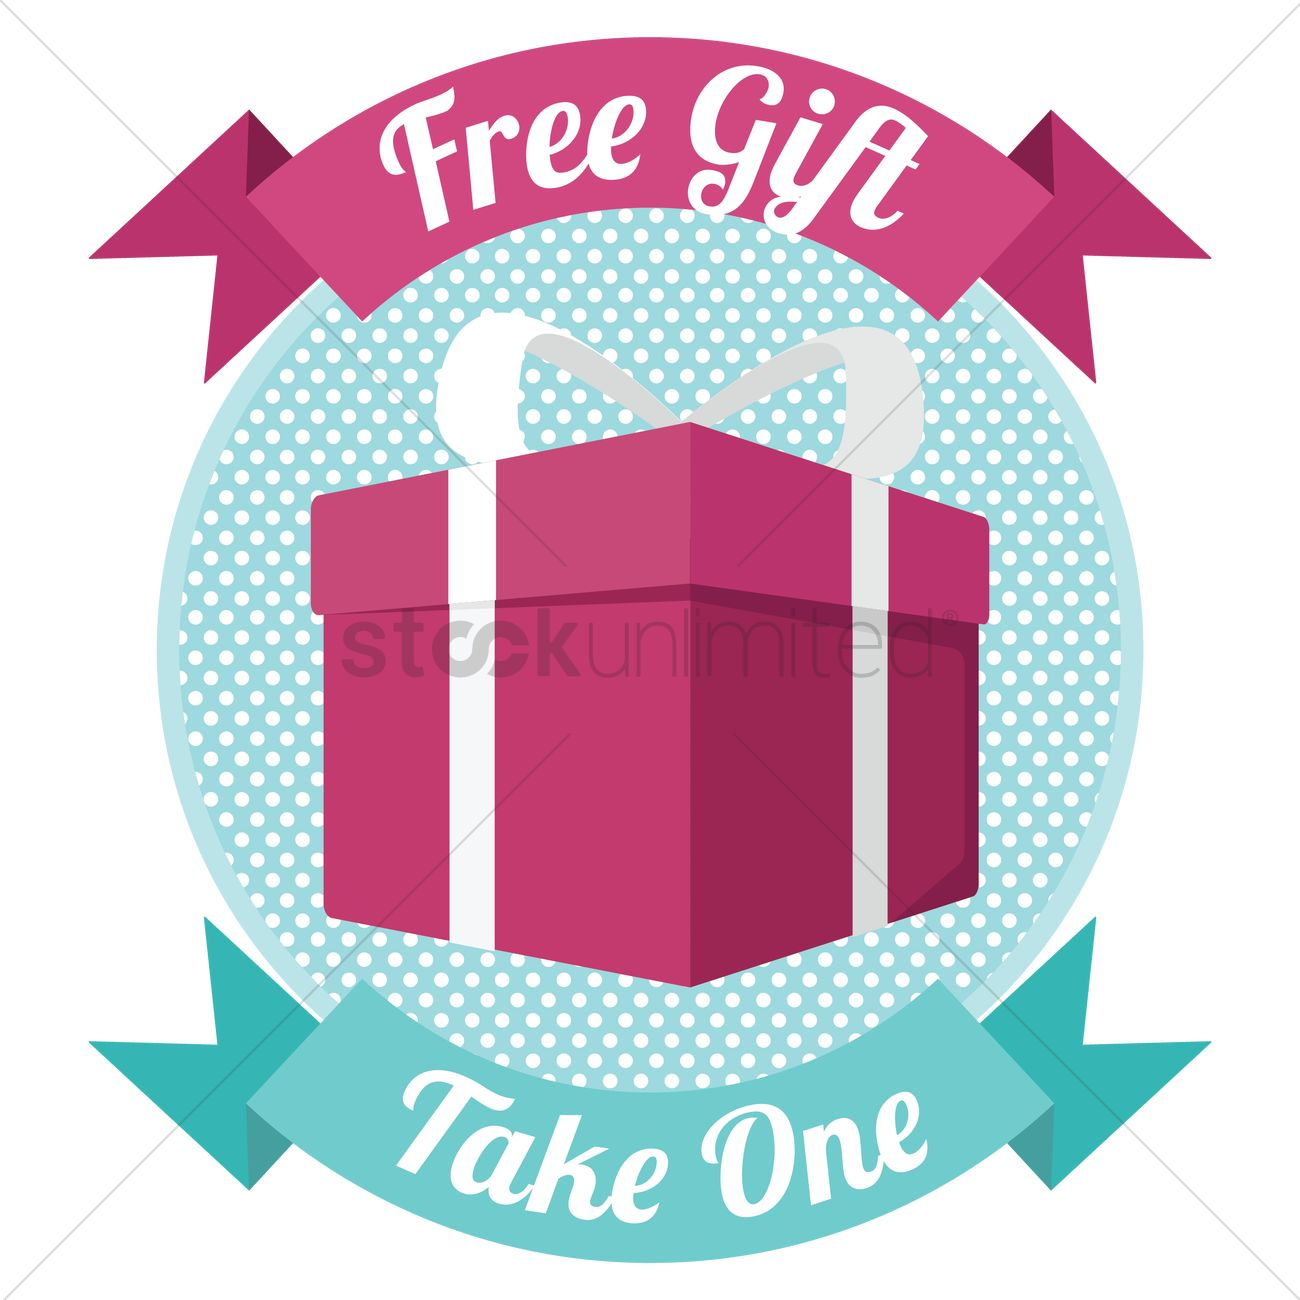 free gift banner vector image 1507983 stockunlimited rh stockunlimited com free graphic images download free graphic images no copyright